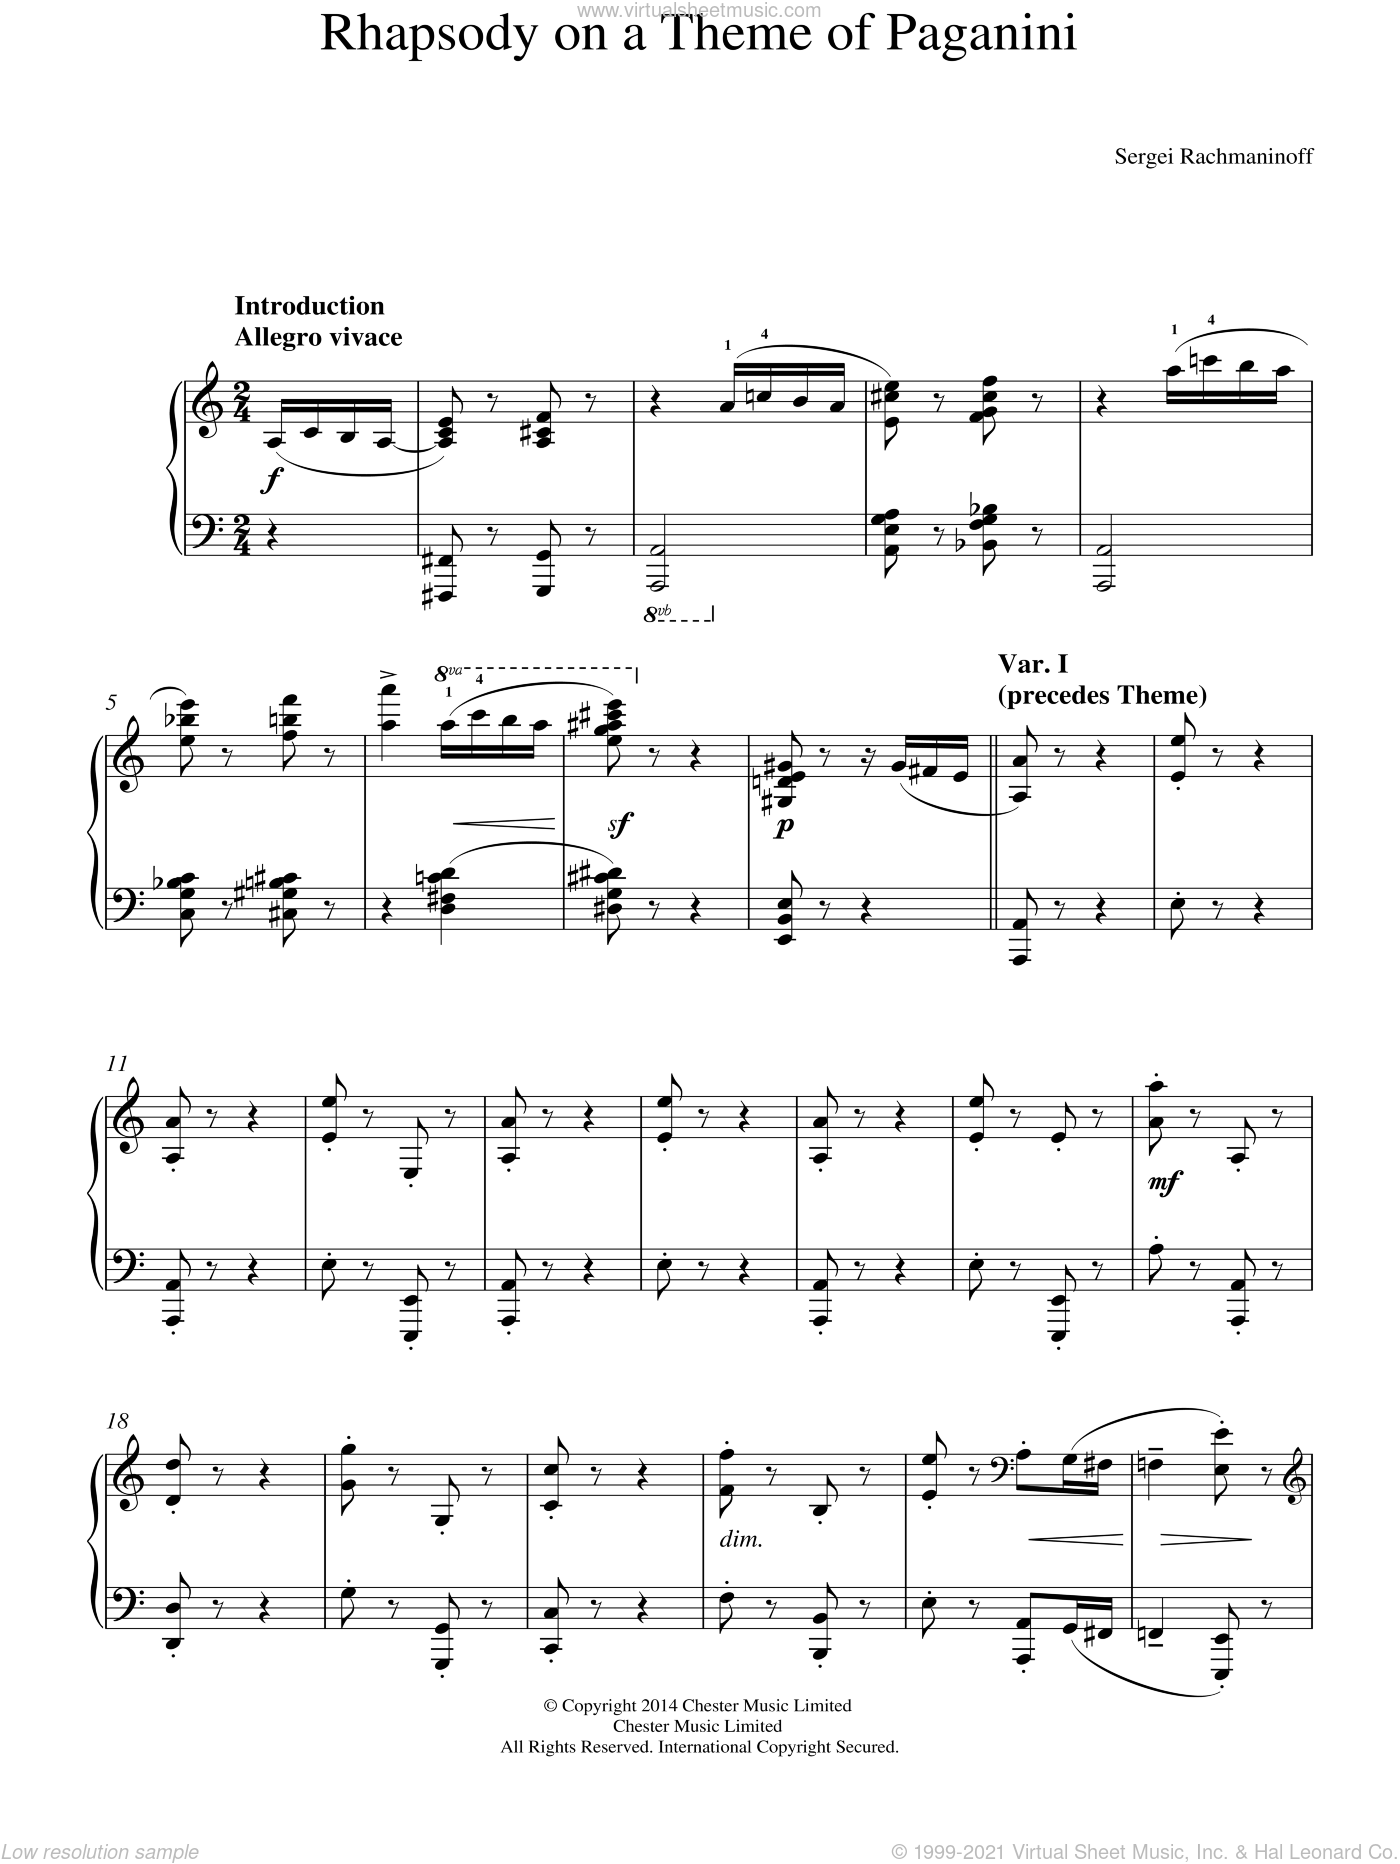 Rhapsody on a Theme of Paganini sheet music for piano solo by Serjeij Rachmaninoff, classical score, intermediate piano. Score Image Preview.